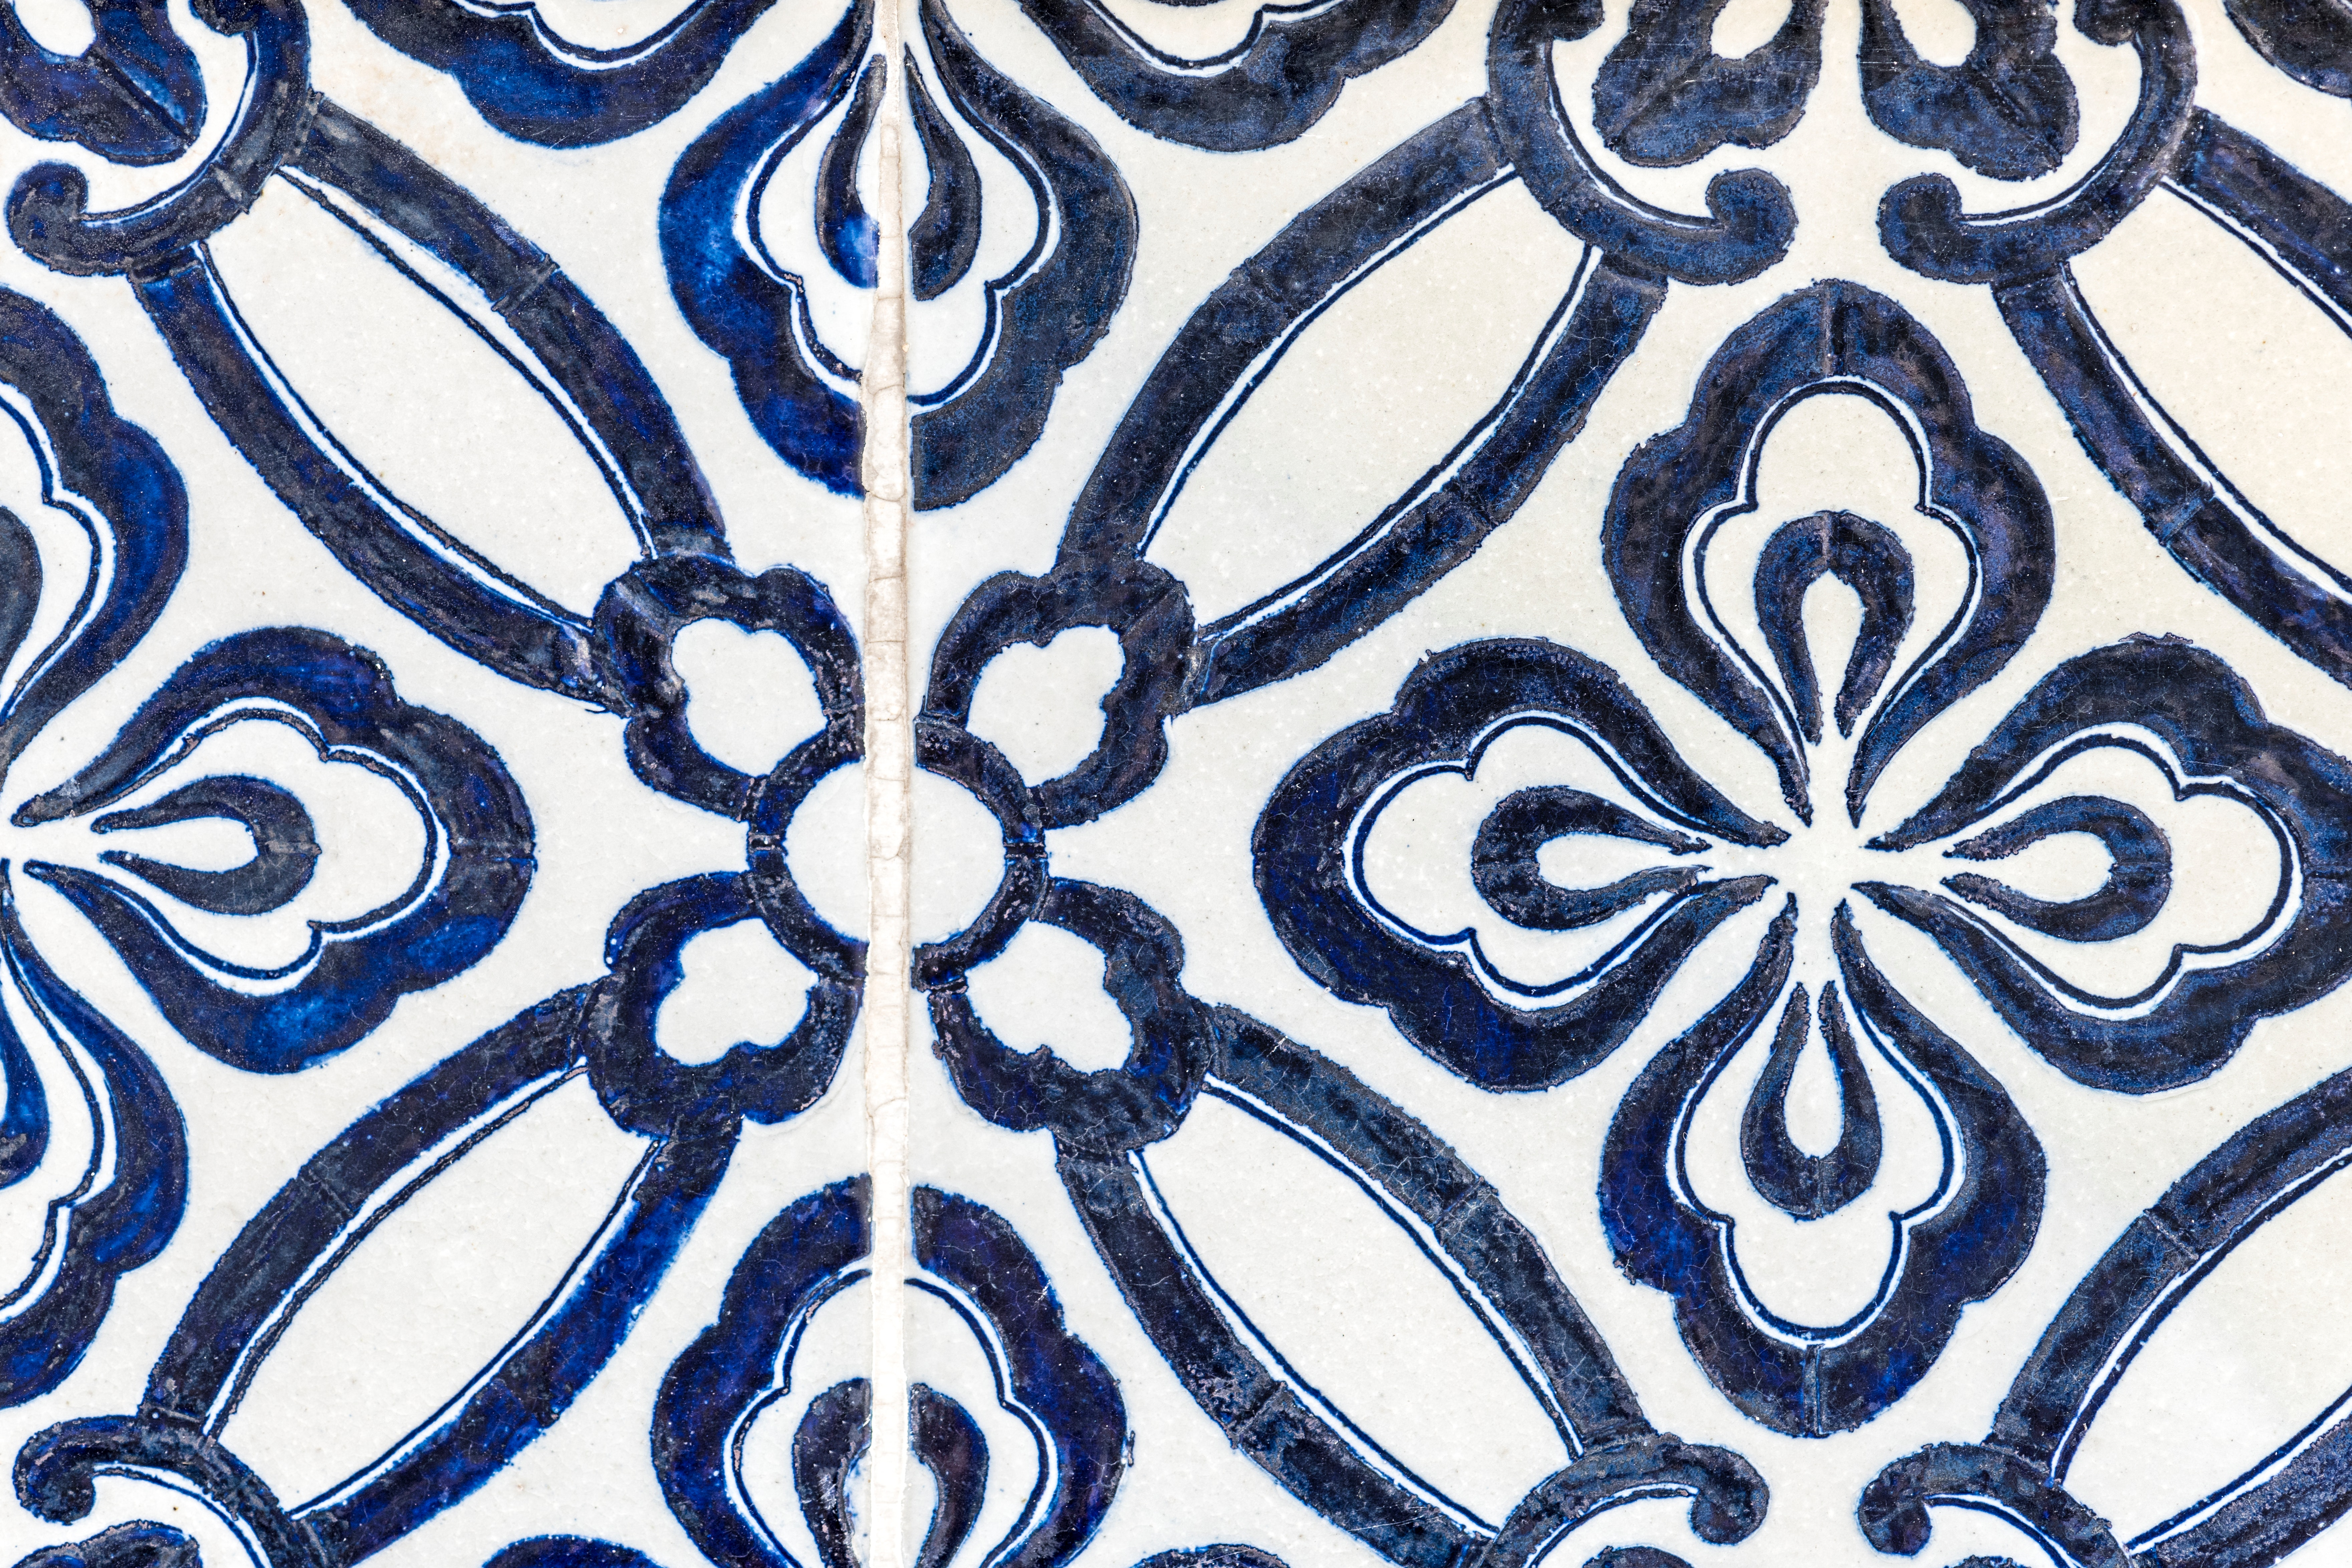 Blue and White Floral Wallpaper, Art, Painted, Tile, Texture, HQ Photo